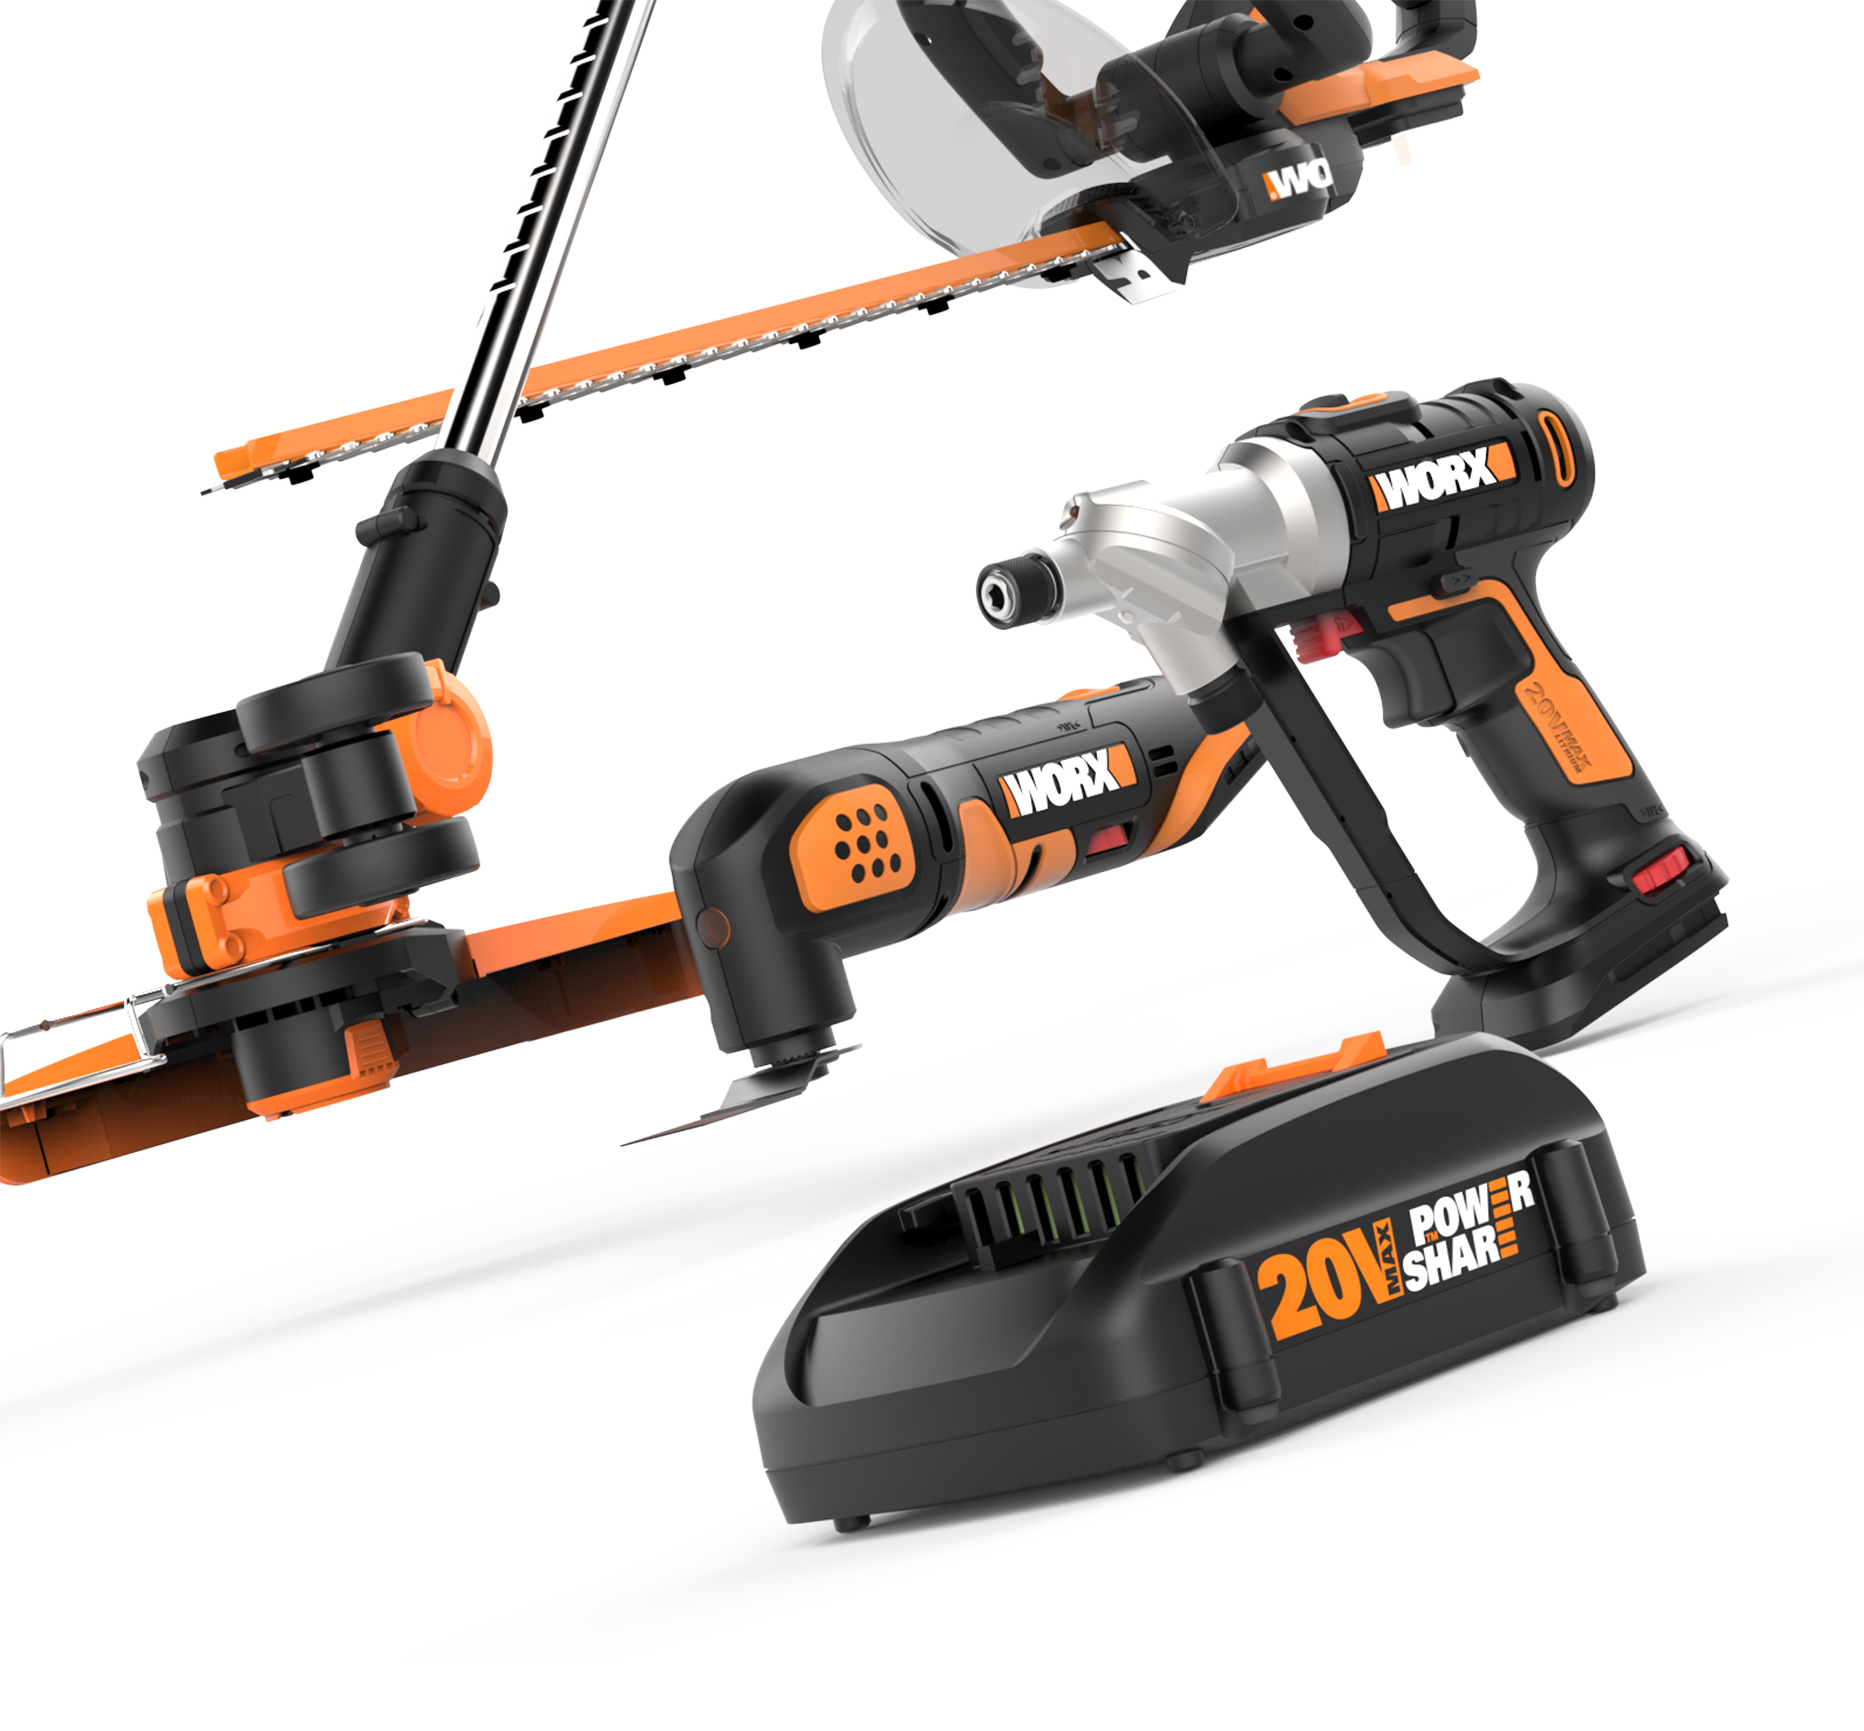 WORX Tool Battery Powershare